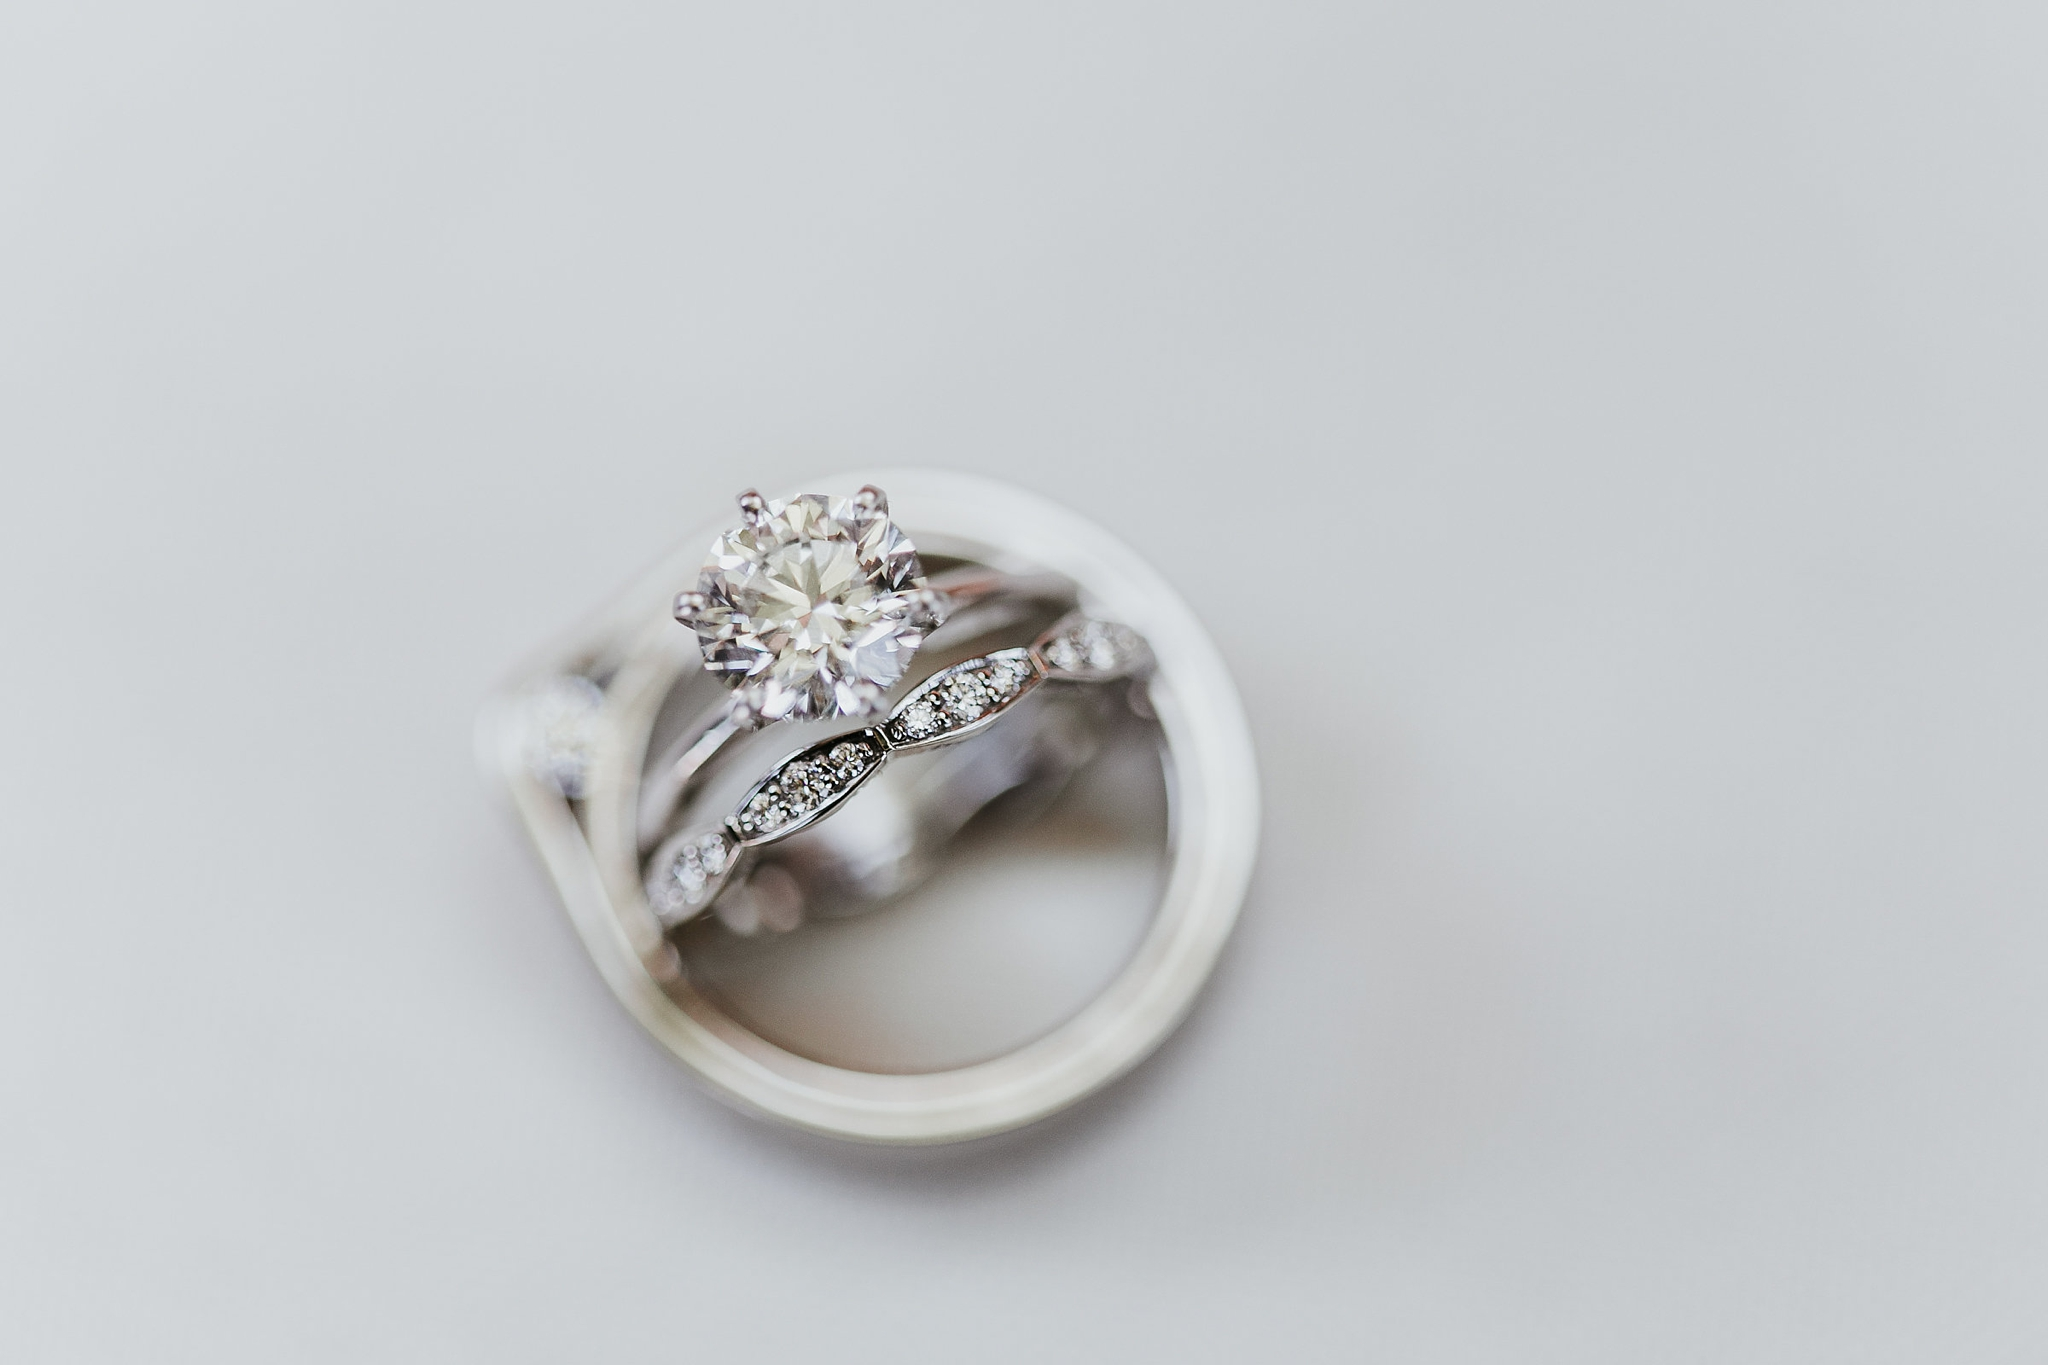 483b50f601bfe Wedding + Engagement Rings - Second Edition — Alicia Lucia ...